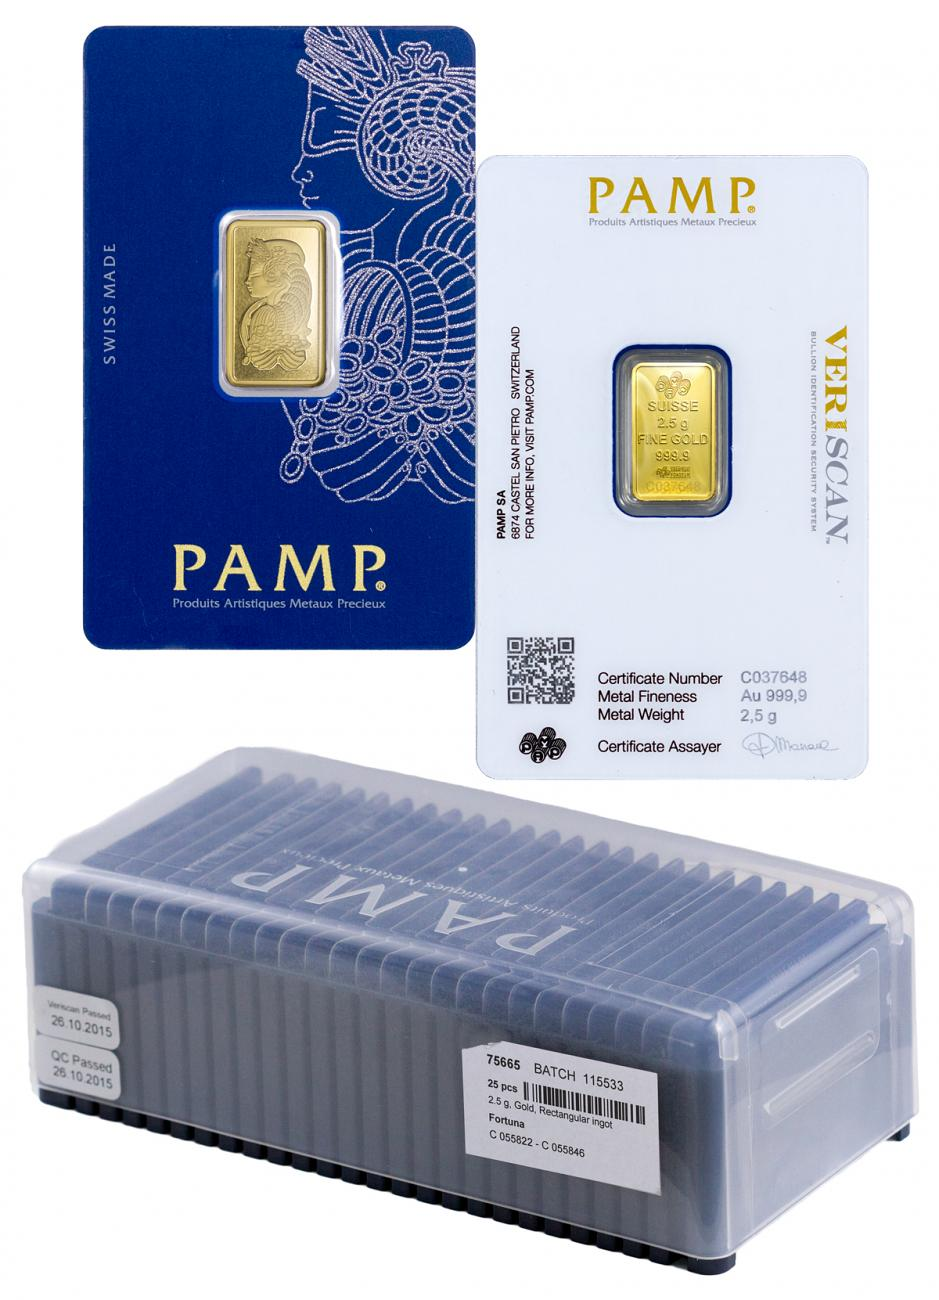 Box of 25 PAMP Fortuna 2.5 g Gold Bars In Assay